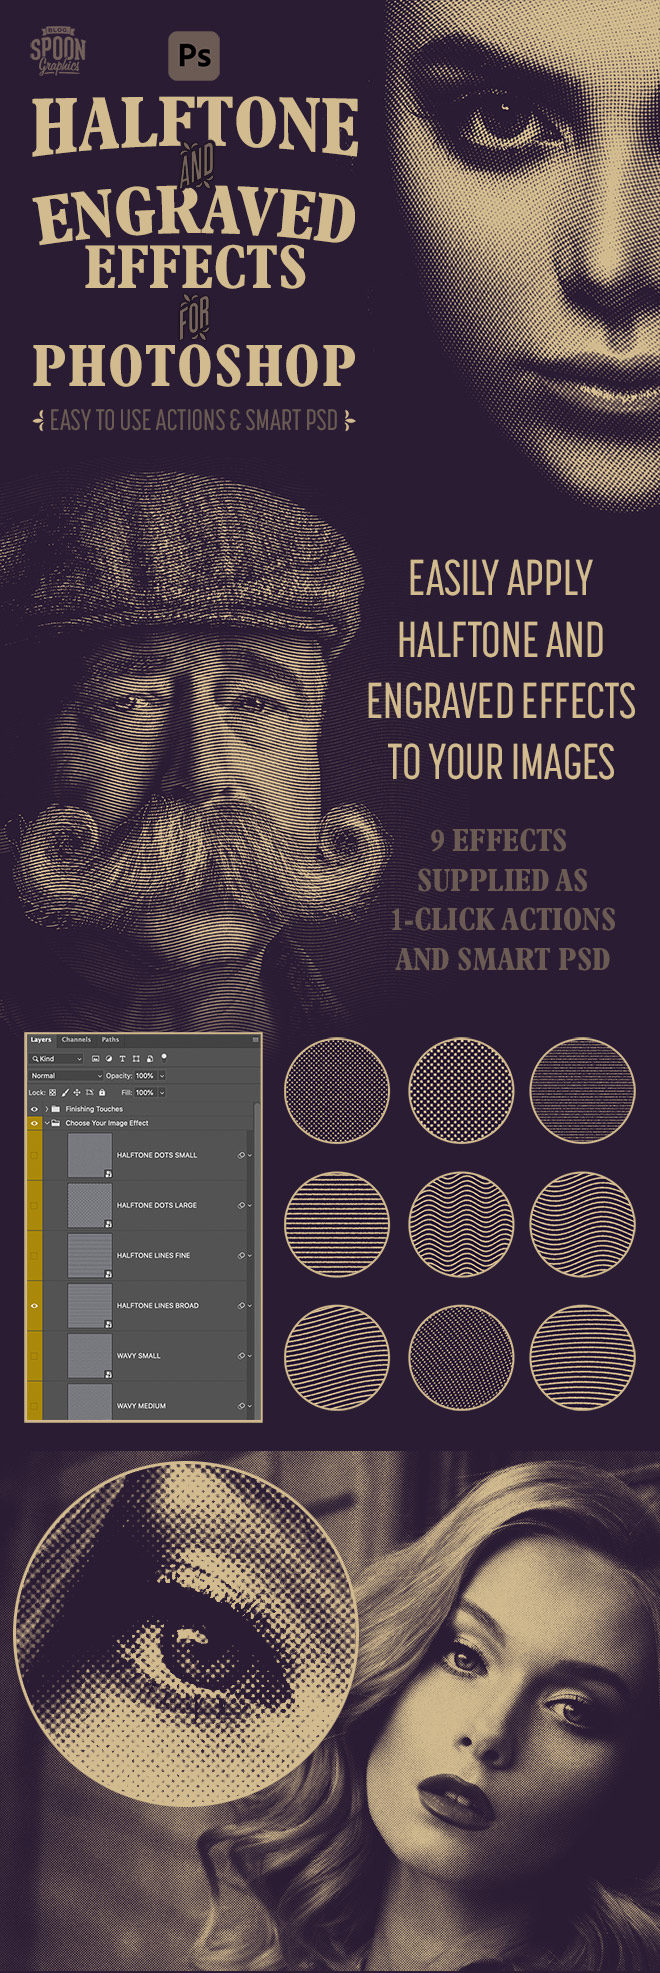 Photoshop Halftone & Engraved Effects for Adobe Photoshop